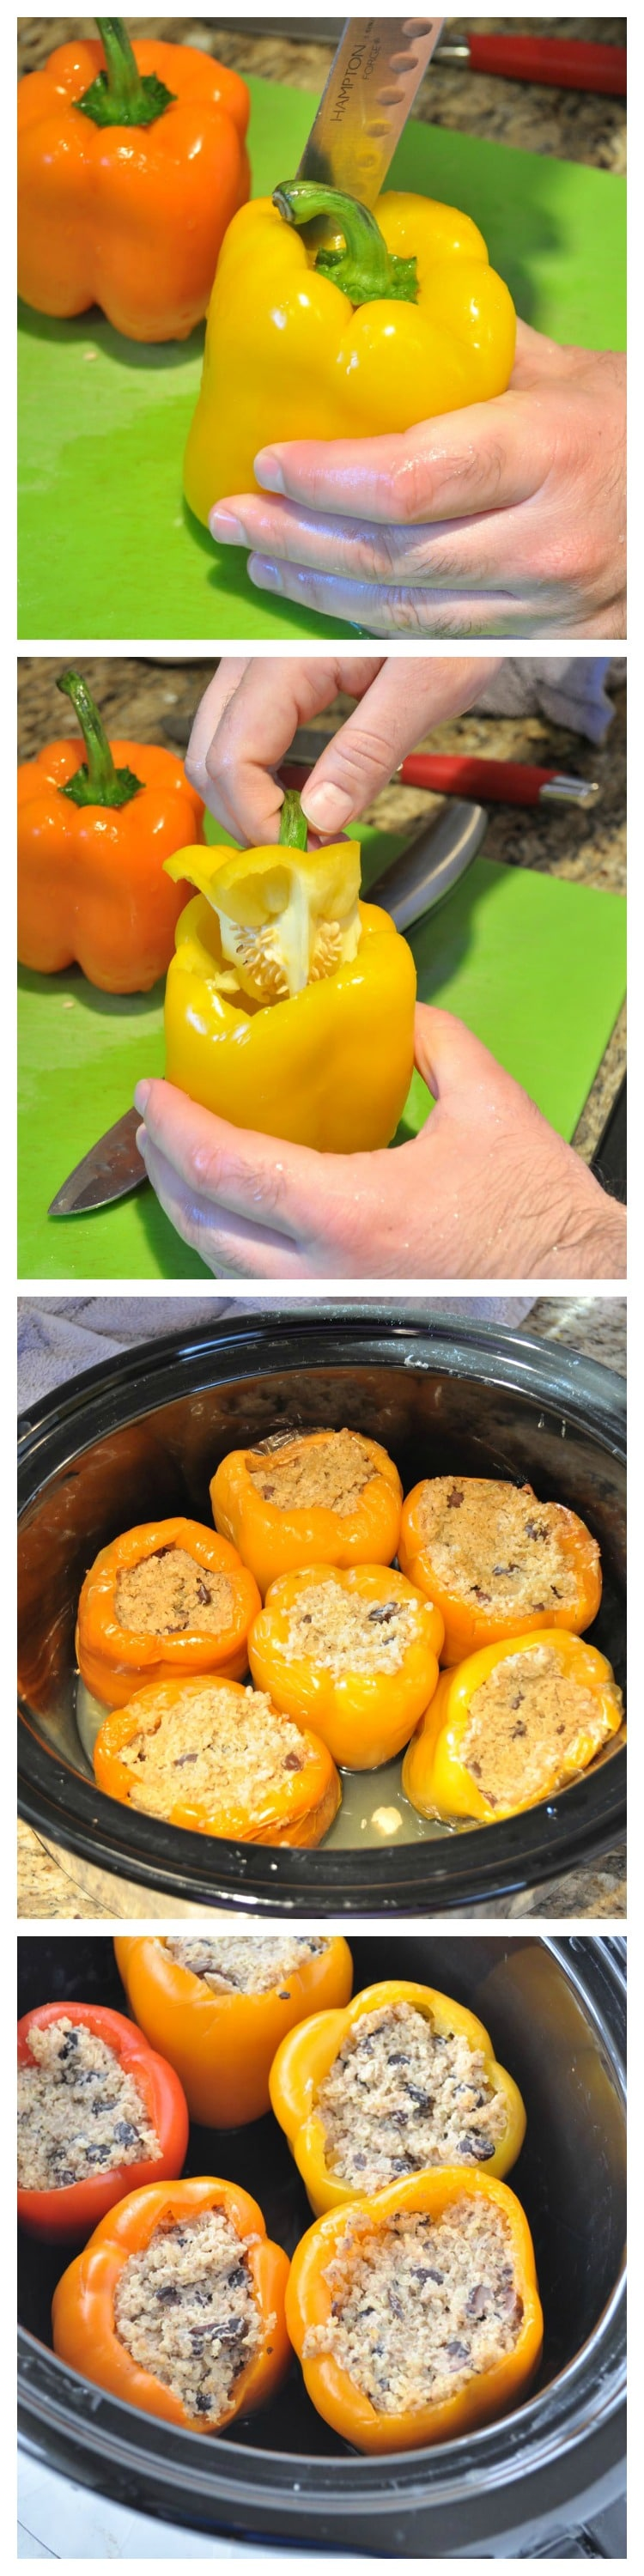 Stuffed Peppers Steps